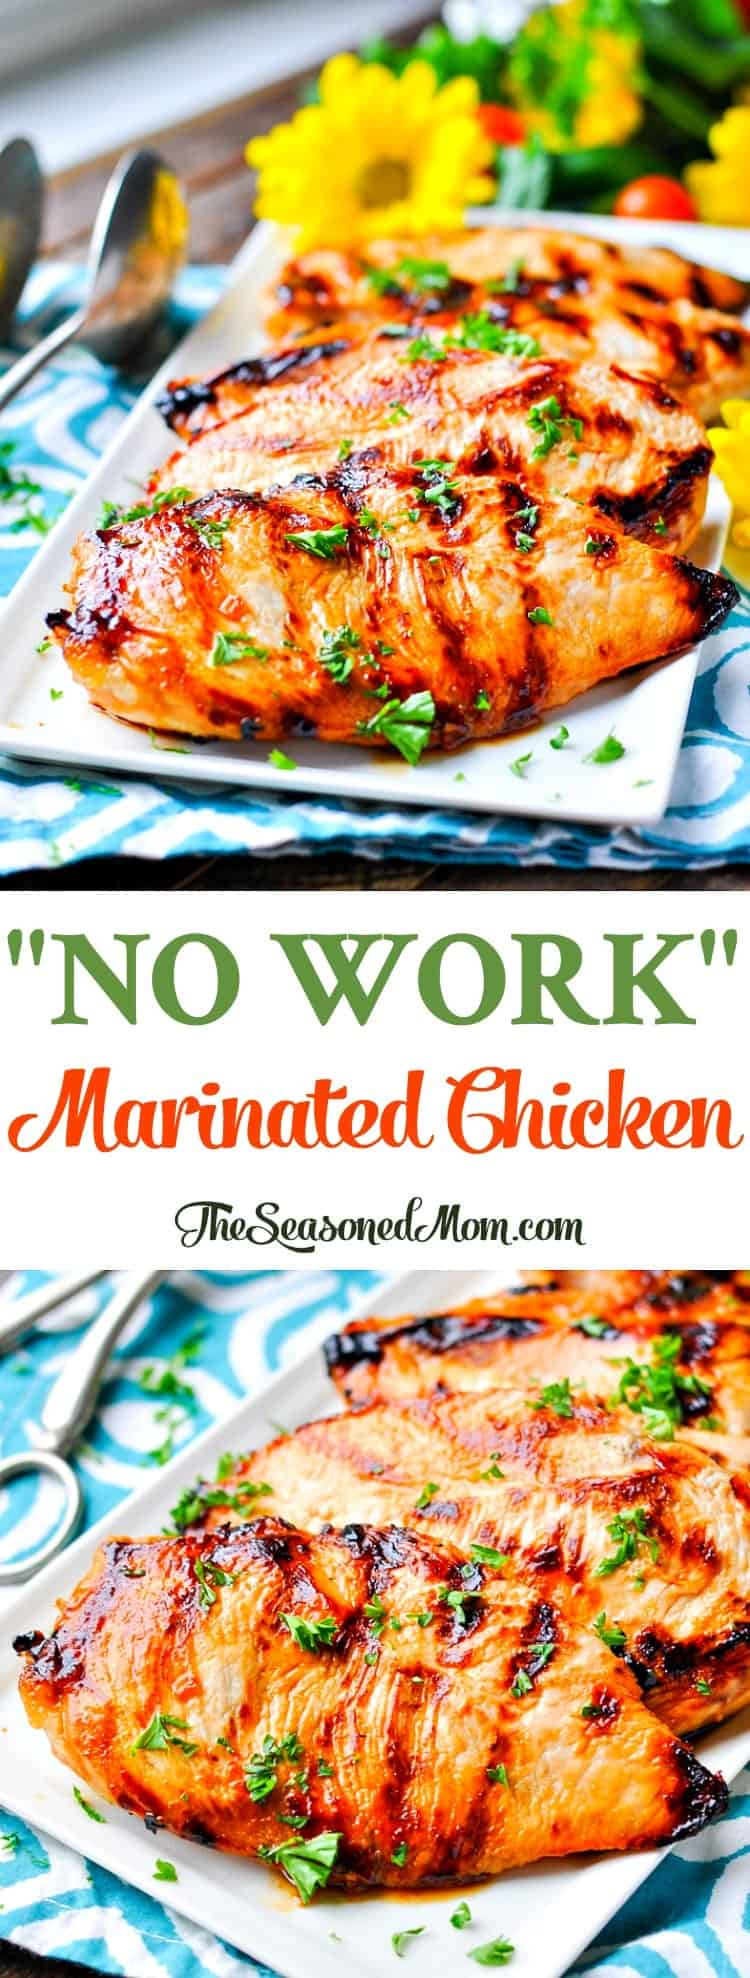 No work marinated chicken the seasoned mom easy dinner recipes healthy 5 ingredient or less forumfinder Choice Image